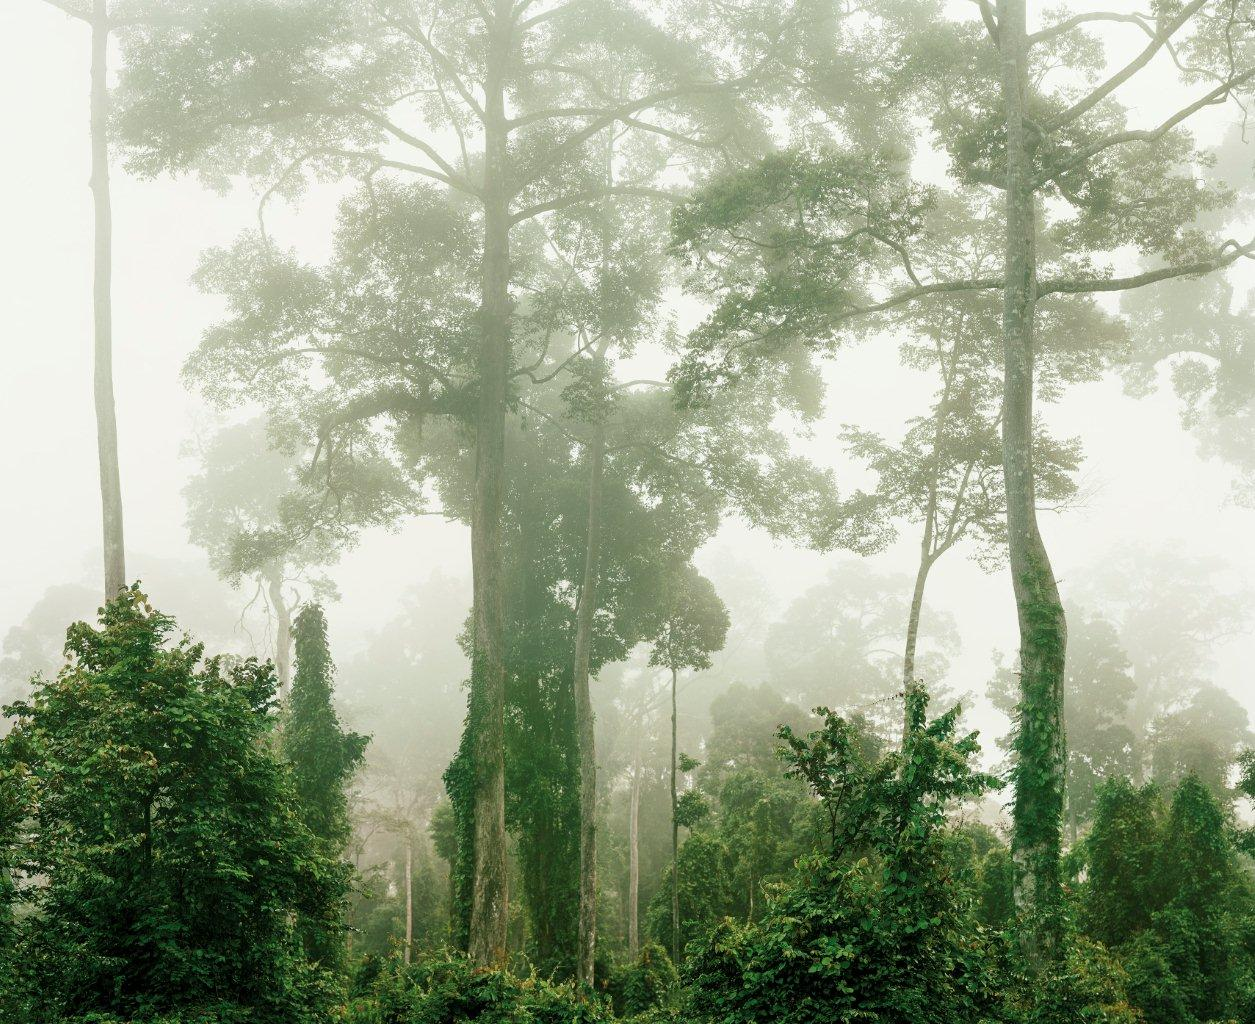 olaf-otto-becker-primary-forest-malaysia